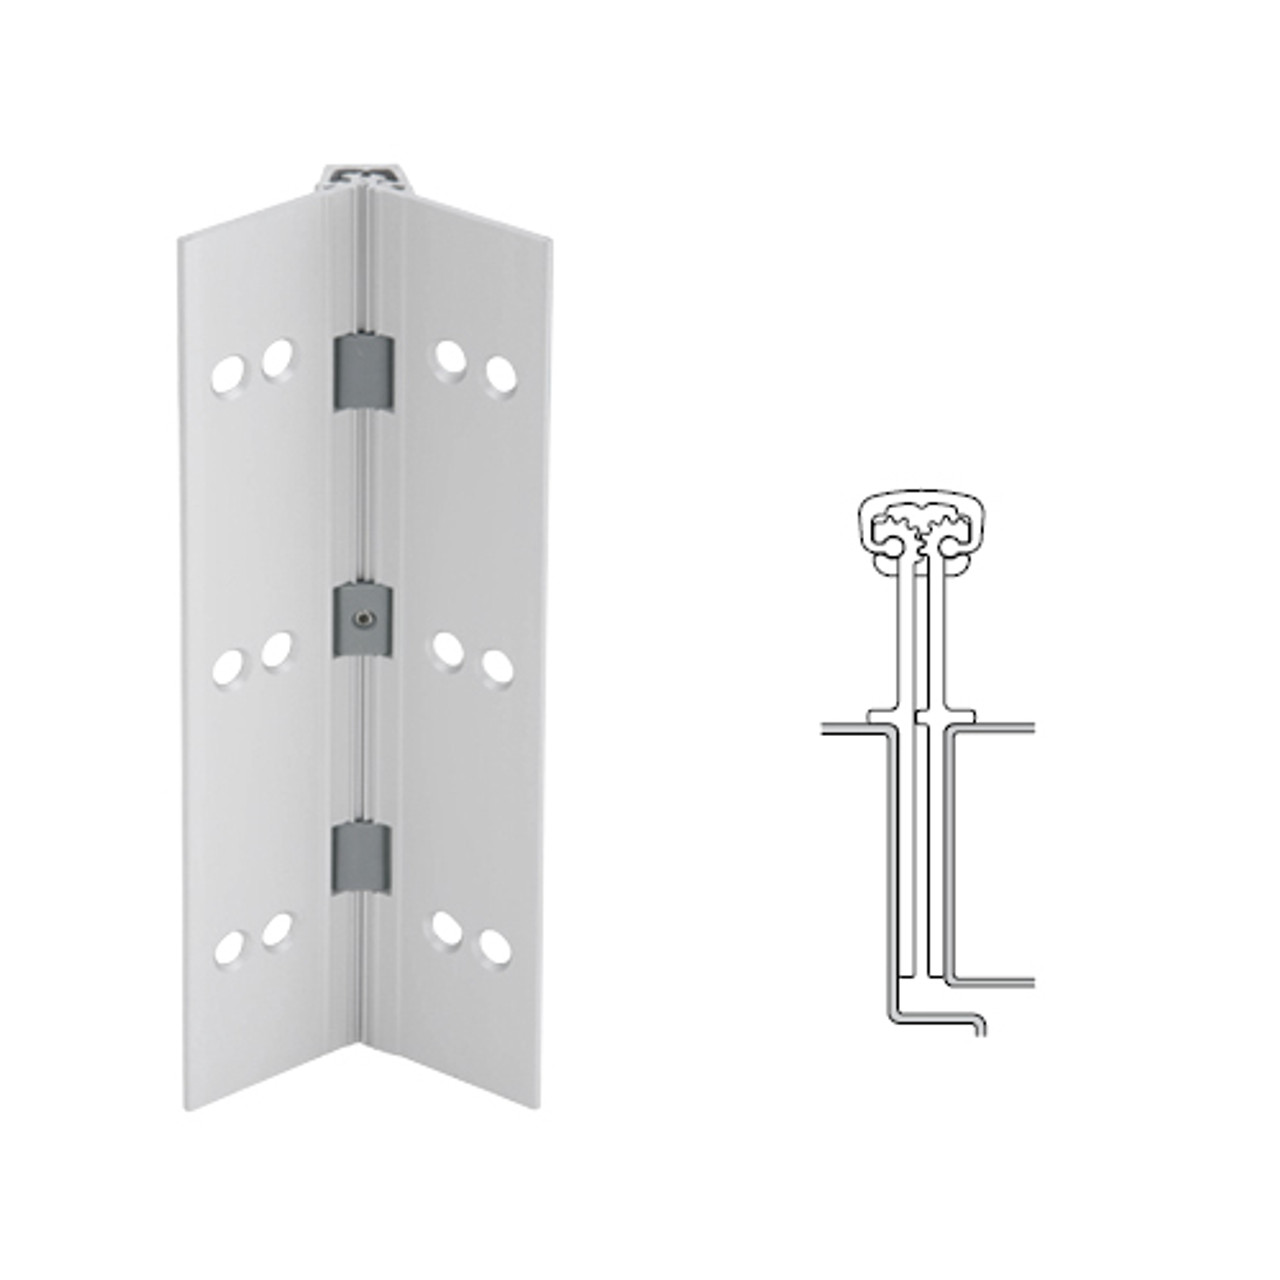 040XY-US28-95-TF IVES Full Mortise Continuous Geared Hinges with Thread Forming Screws in Satin Aluminum